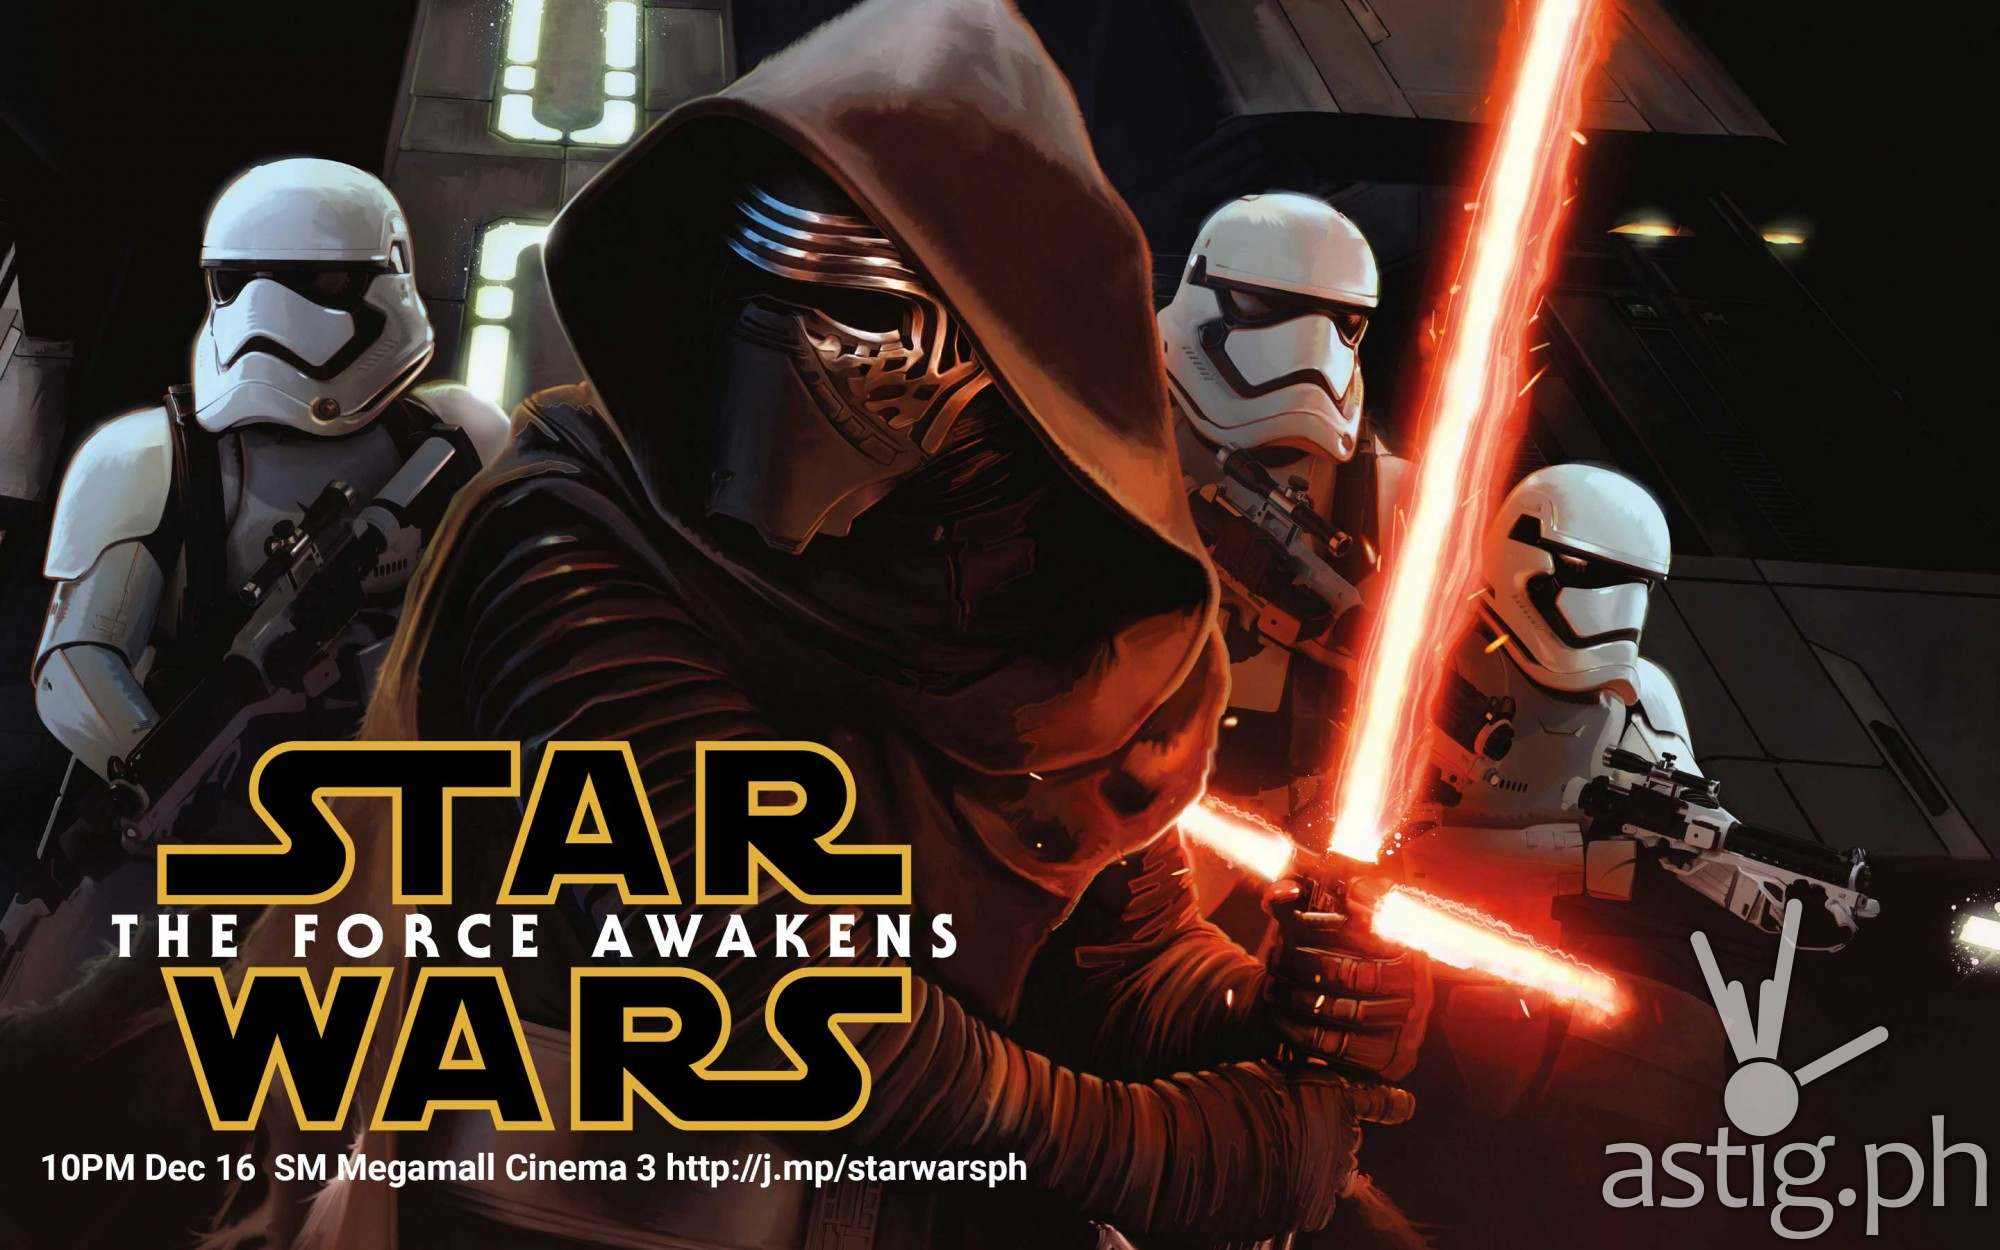 Star Wars Force Awakens advance movie screening